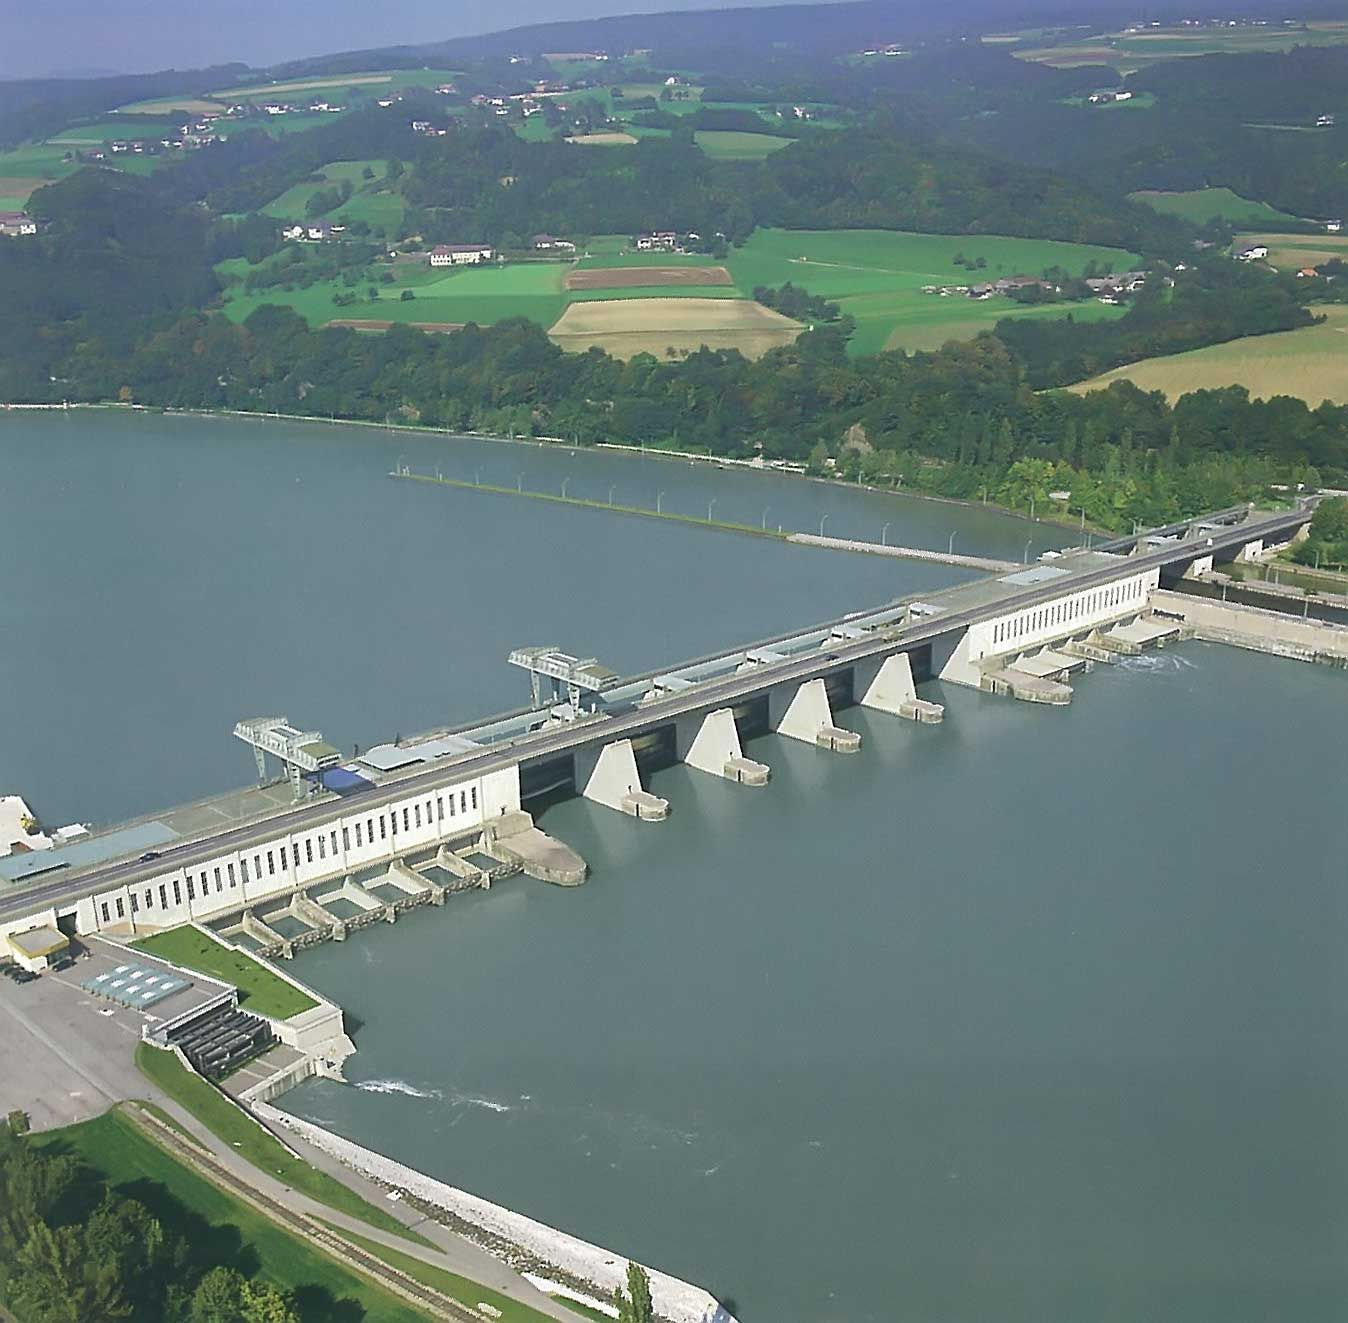 Gravitational power plants use the same principle as hydroelectric power plants (shown here in the photo) but do not have a dam or water reservoir. © fr.academic.ru